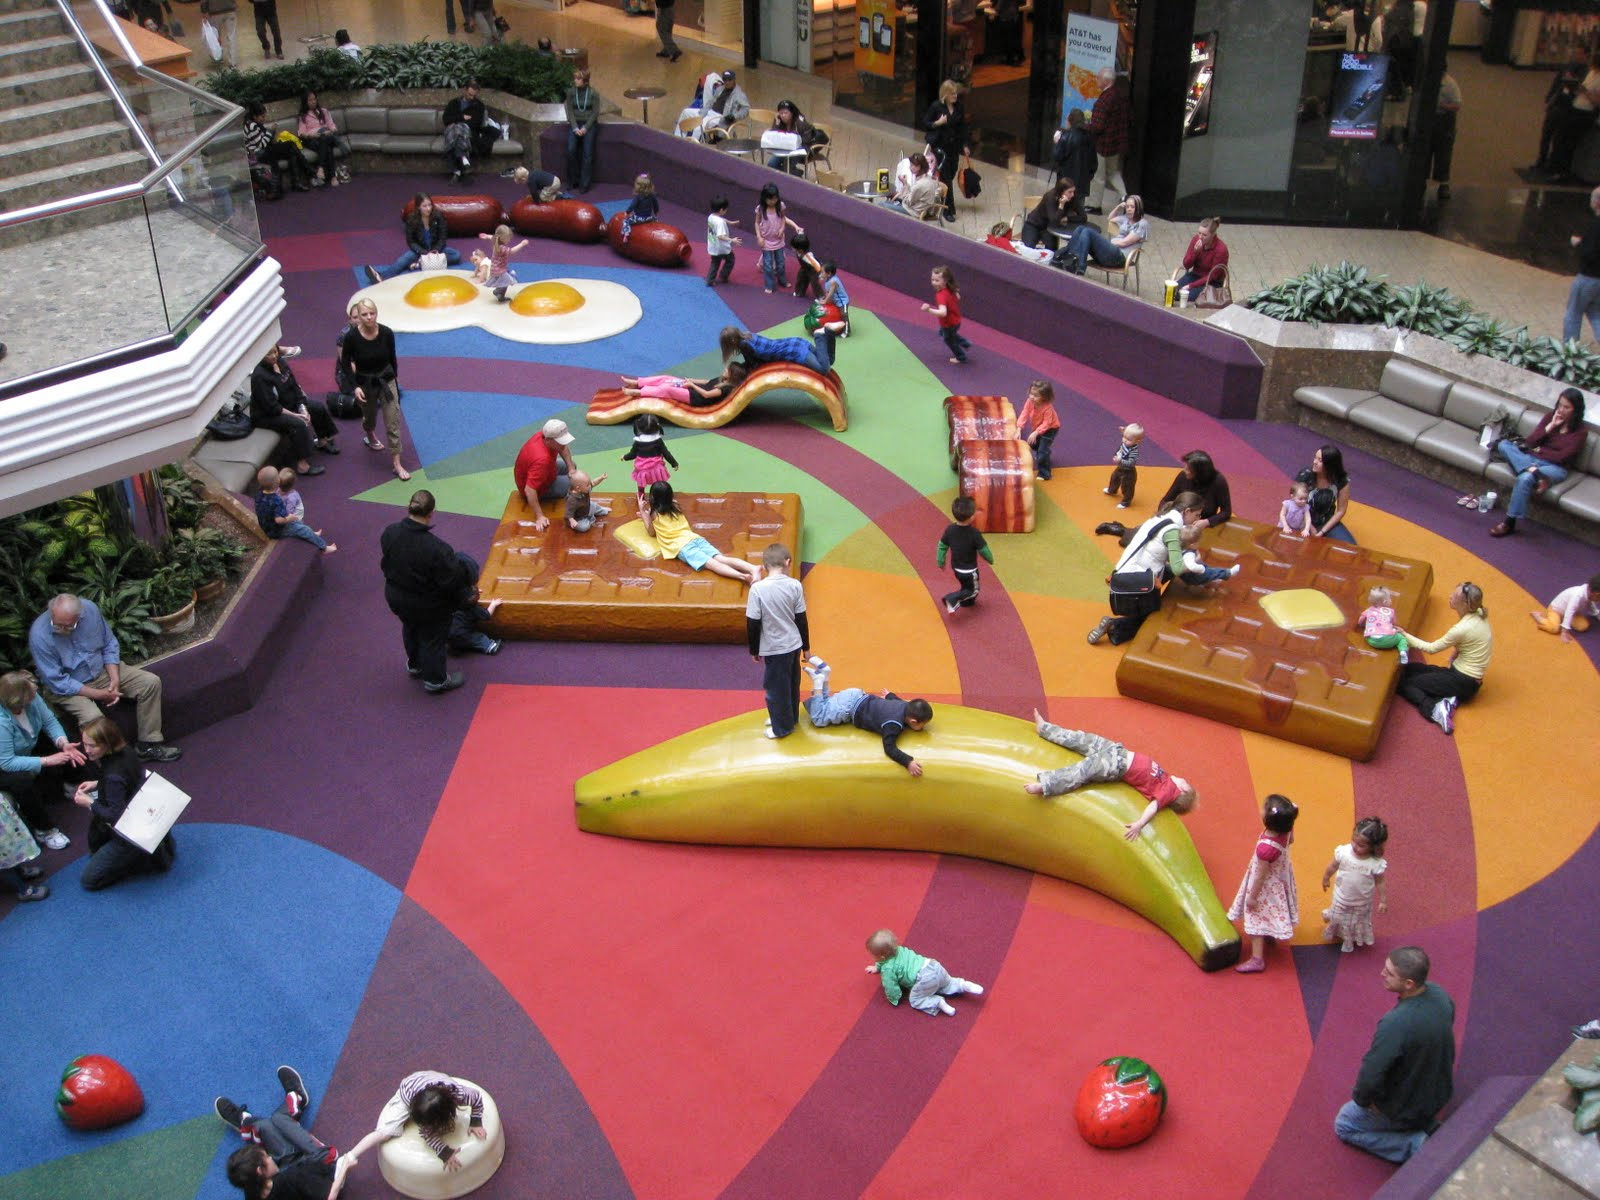 Unusual Furniture Cherry Creek Mall Shopping Center Denver Colorado Play Area Play Place Breakfast Food Playground Equipment Banana Waffles Bacon Eggs Sausage Strawberries